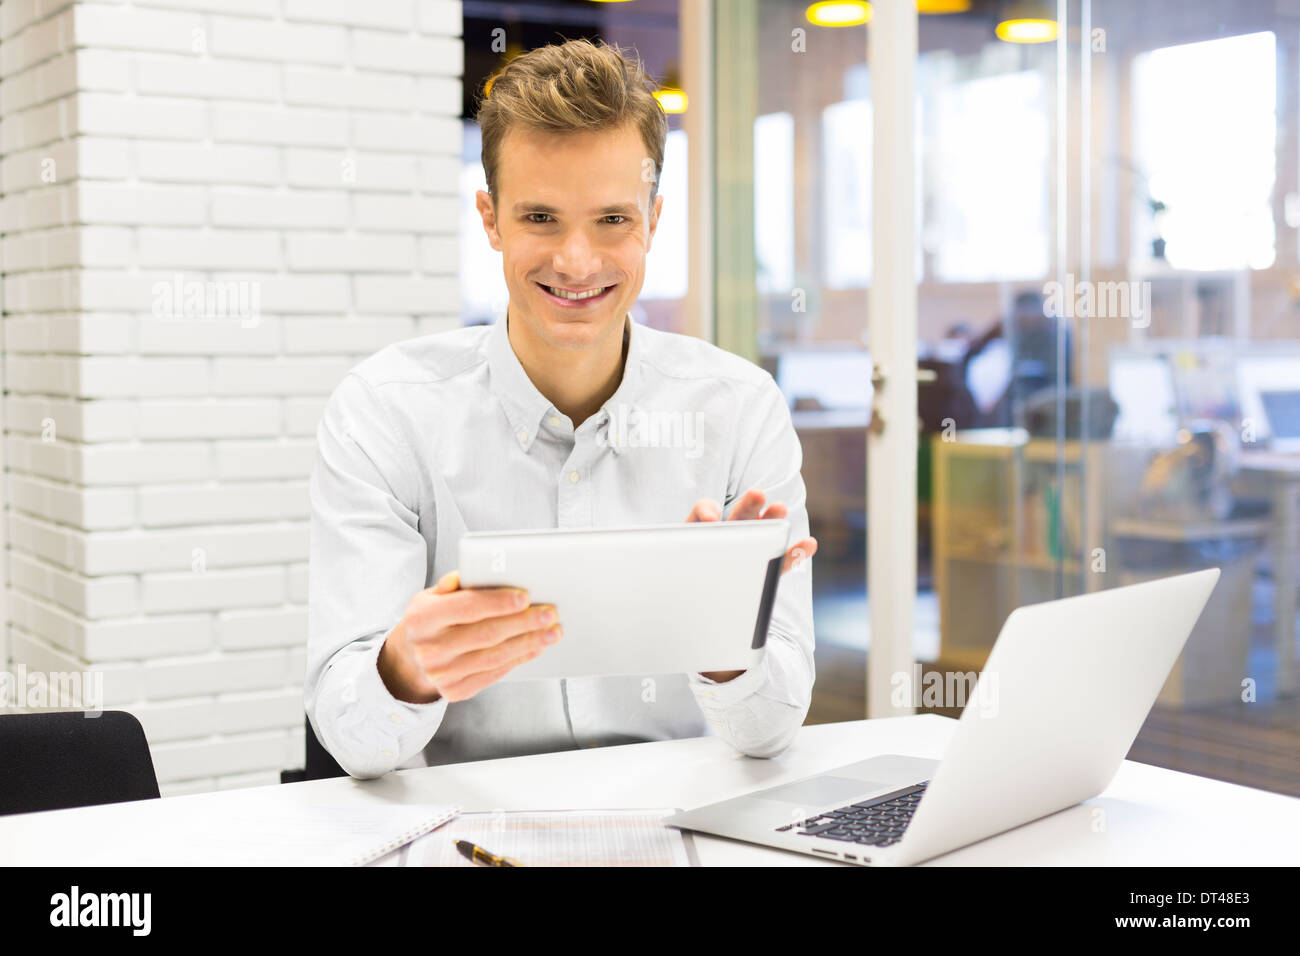 Man business tablet pc desk laptop message e-mail looking camera - Stock Image